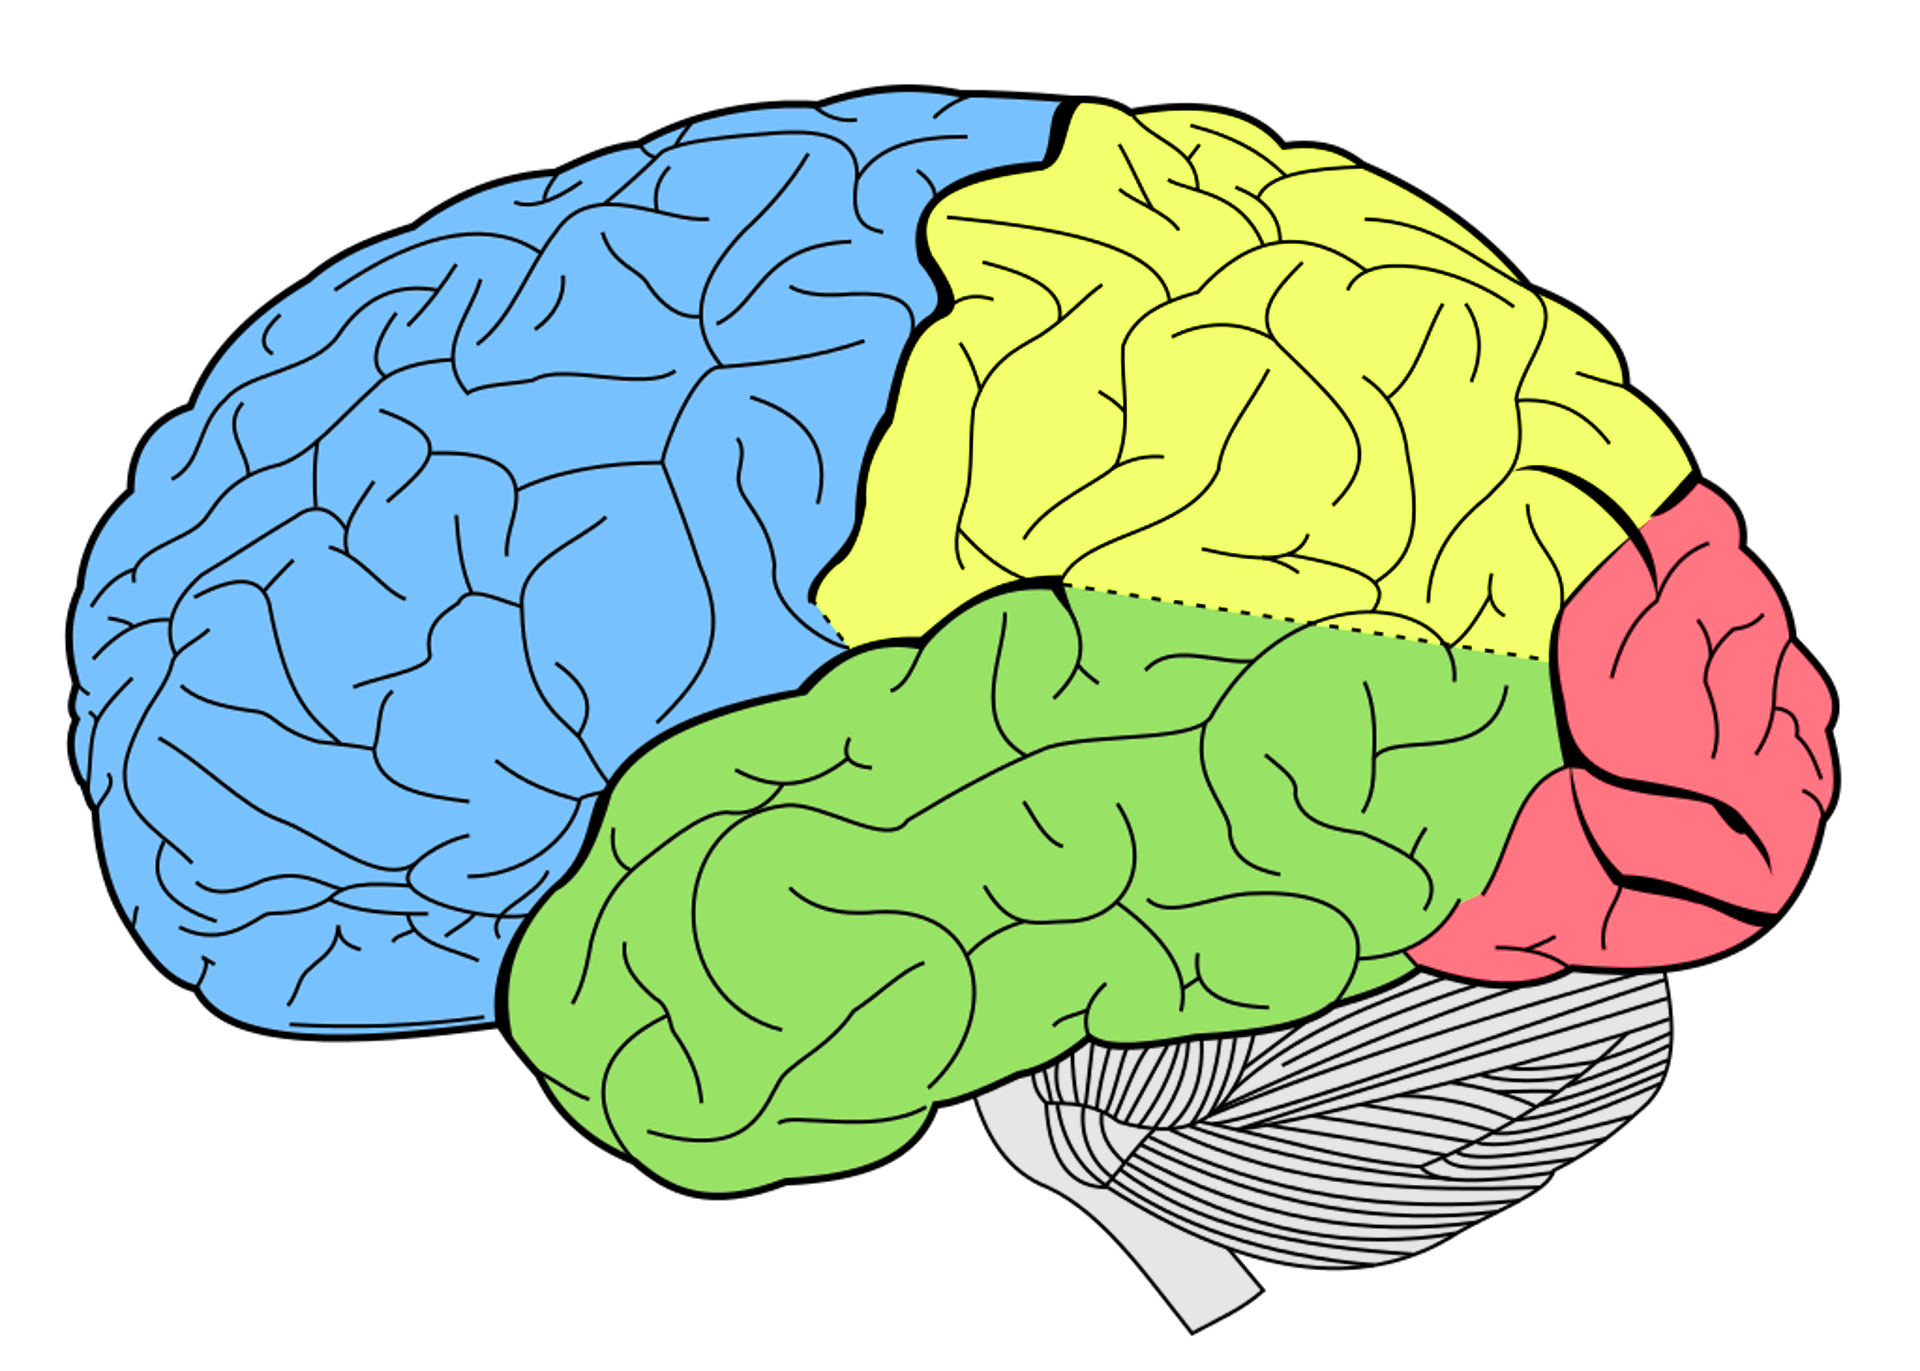 Graphical Brain, Brain, Graphic, Graphical, Mind, HQ Photo